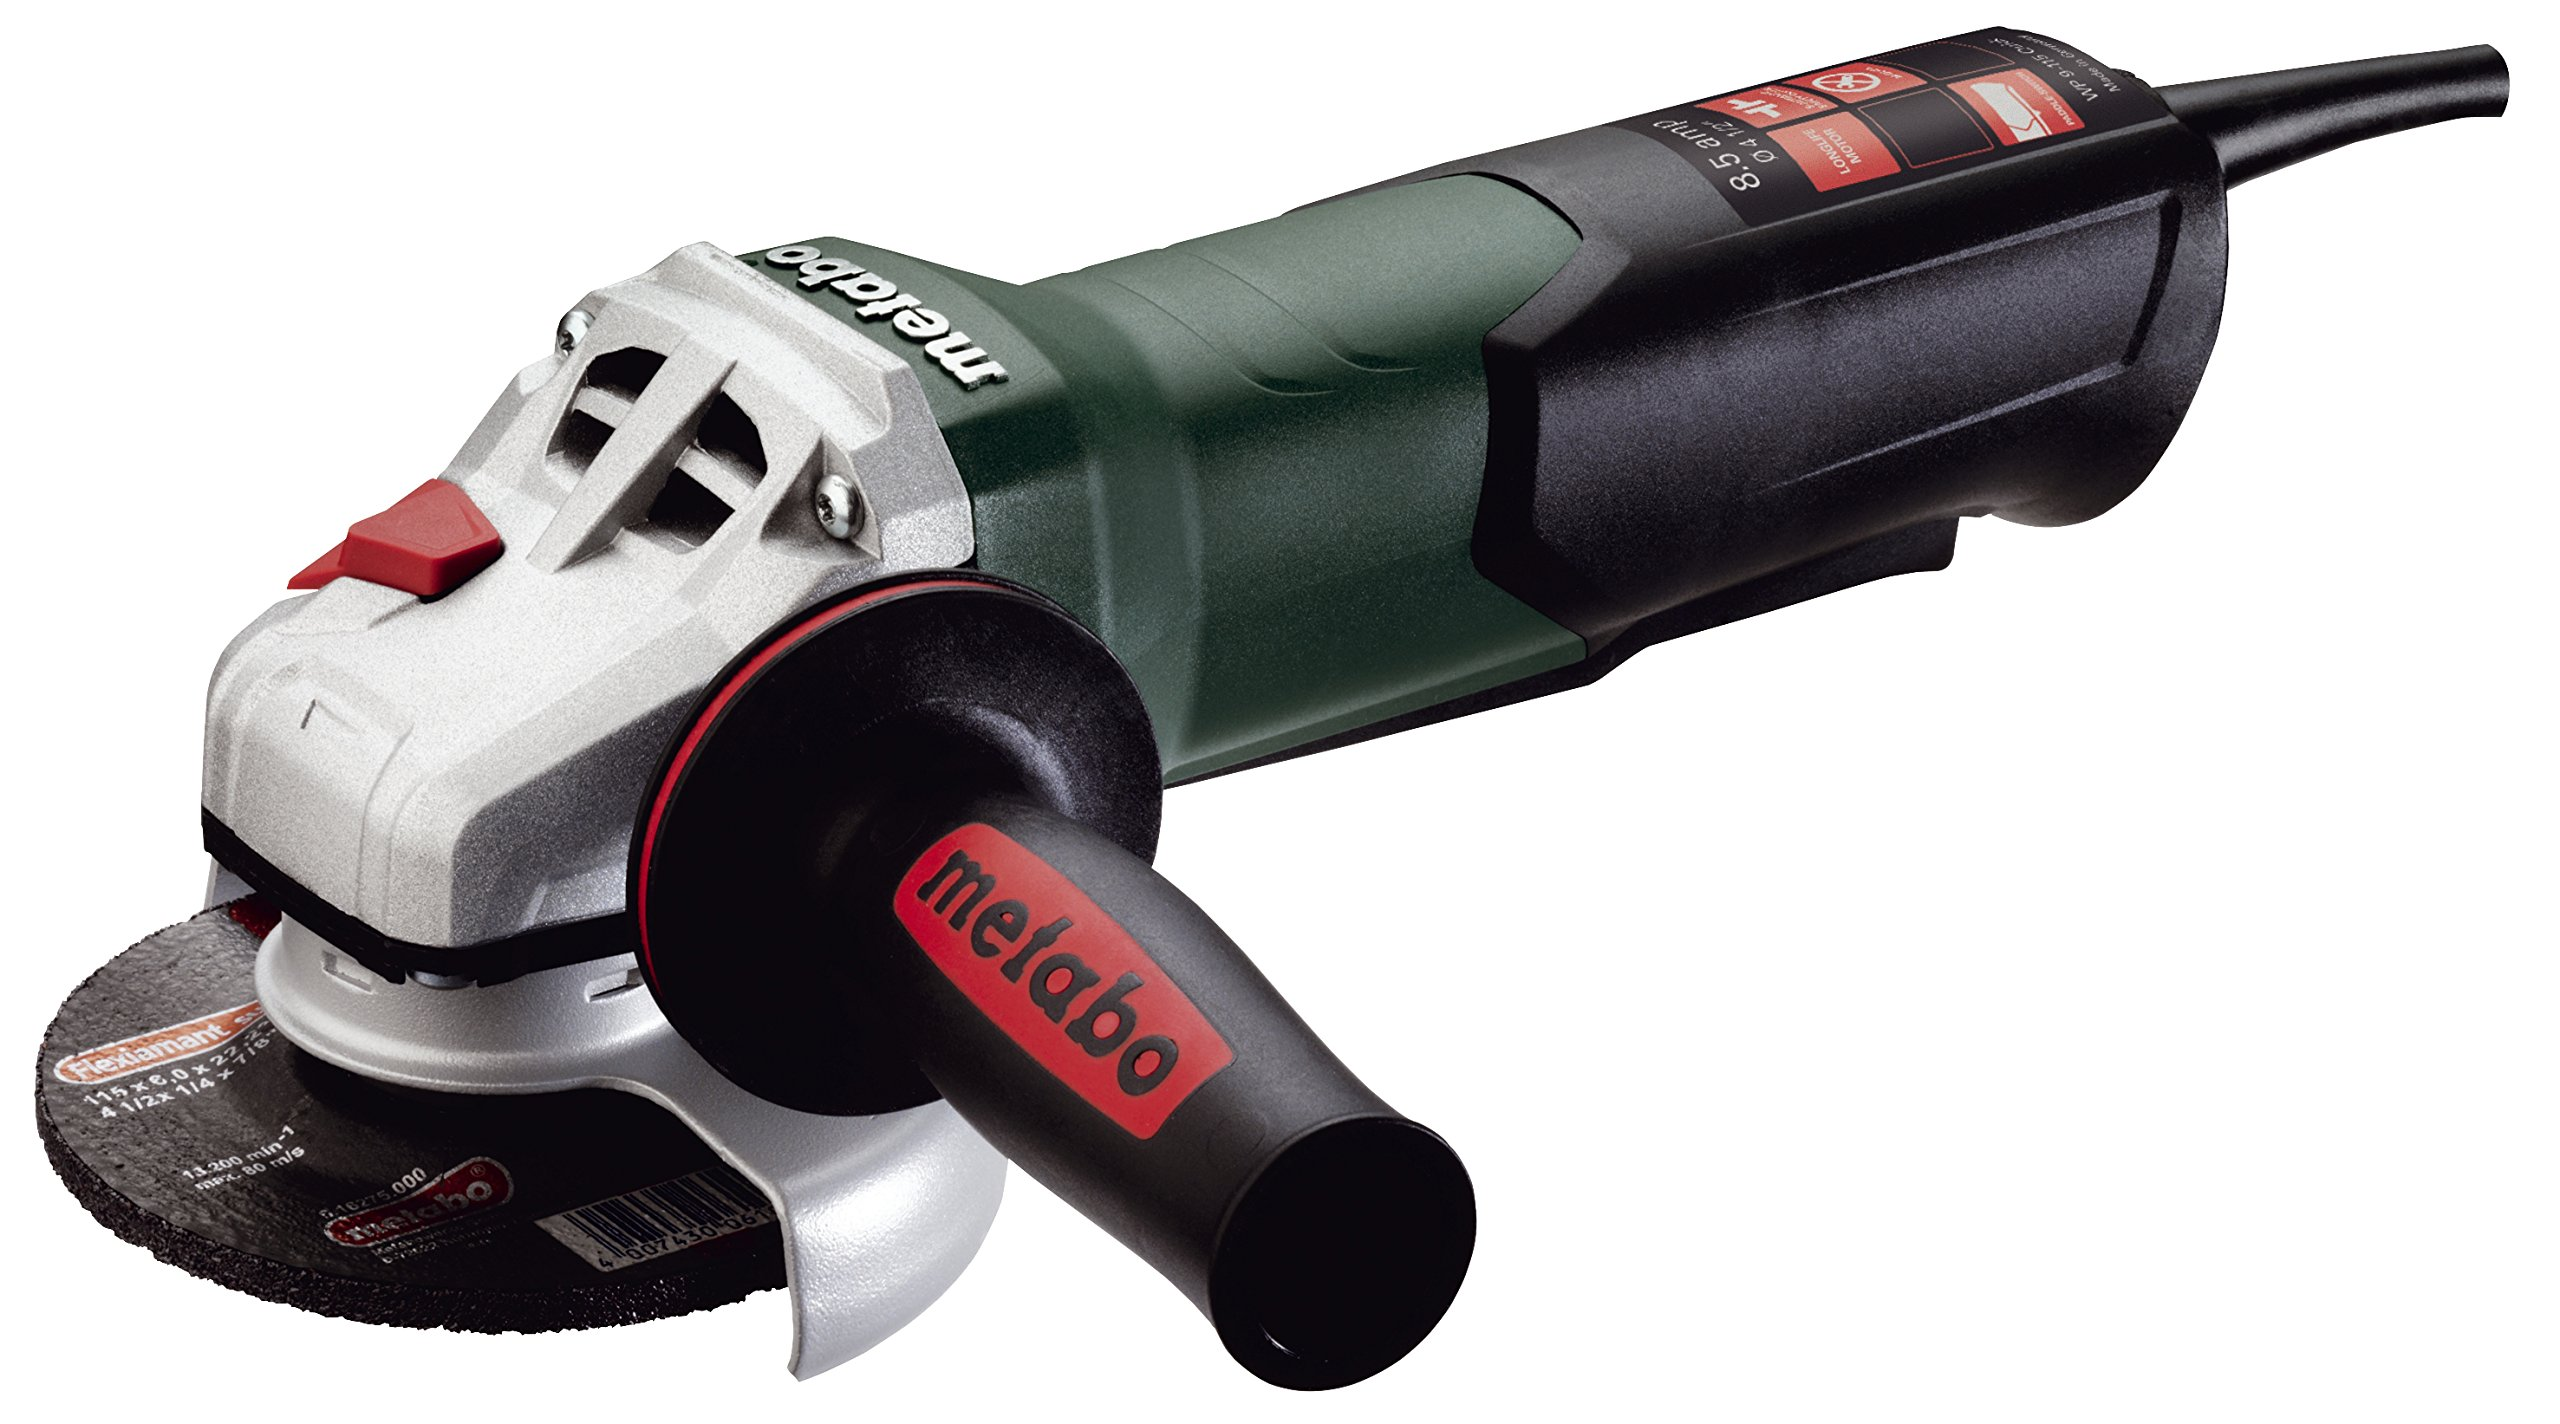 Metabo WP9-115 Quick 8.5 Amp 10,500 rpm Angle Grinder with Non-locking Paddle Switch, 4 1/2''